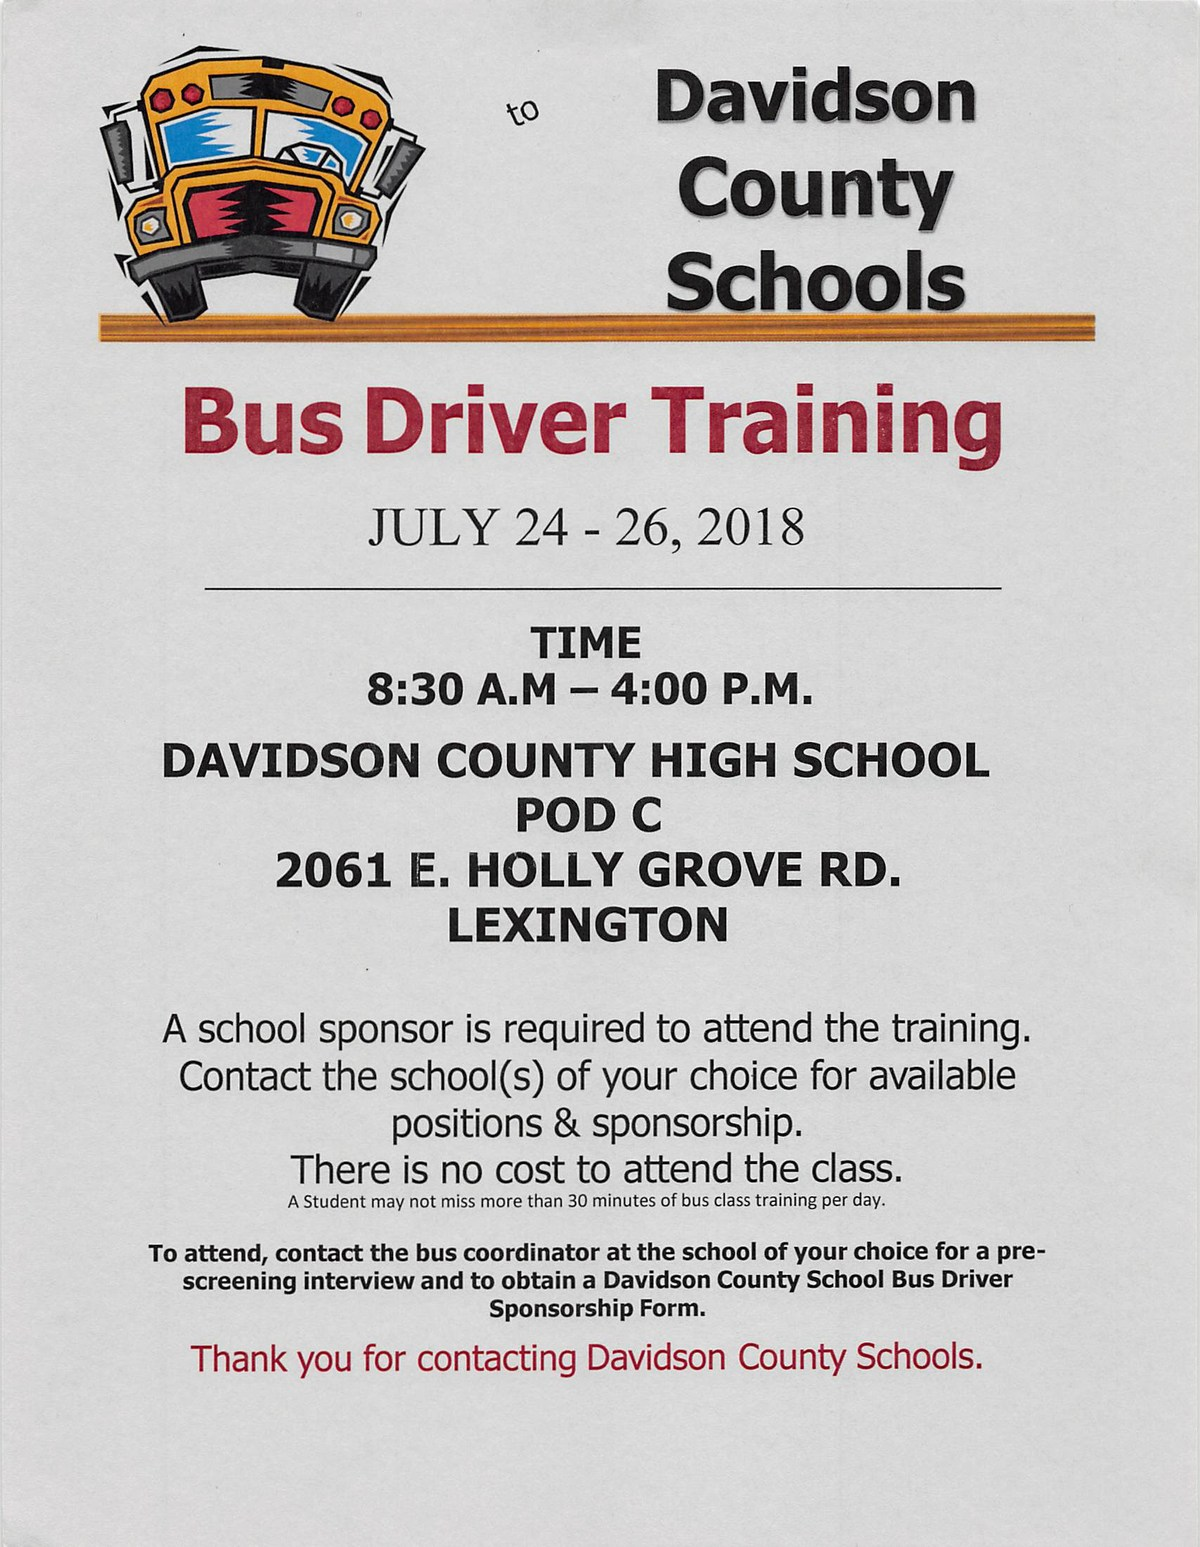 Bus Driver Training Information